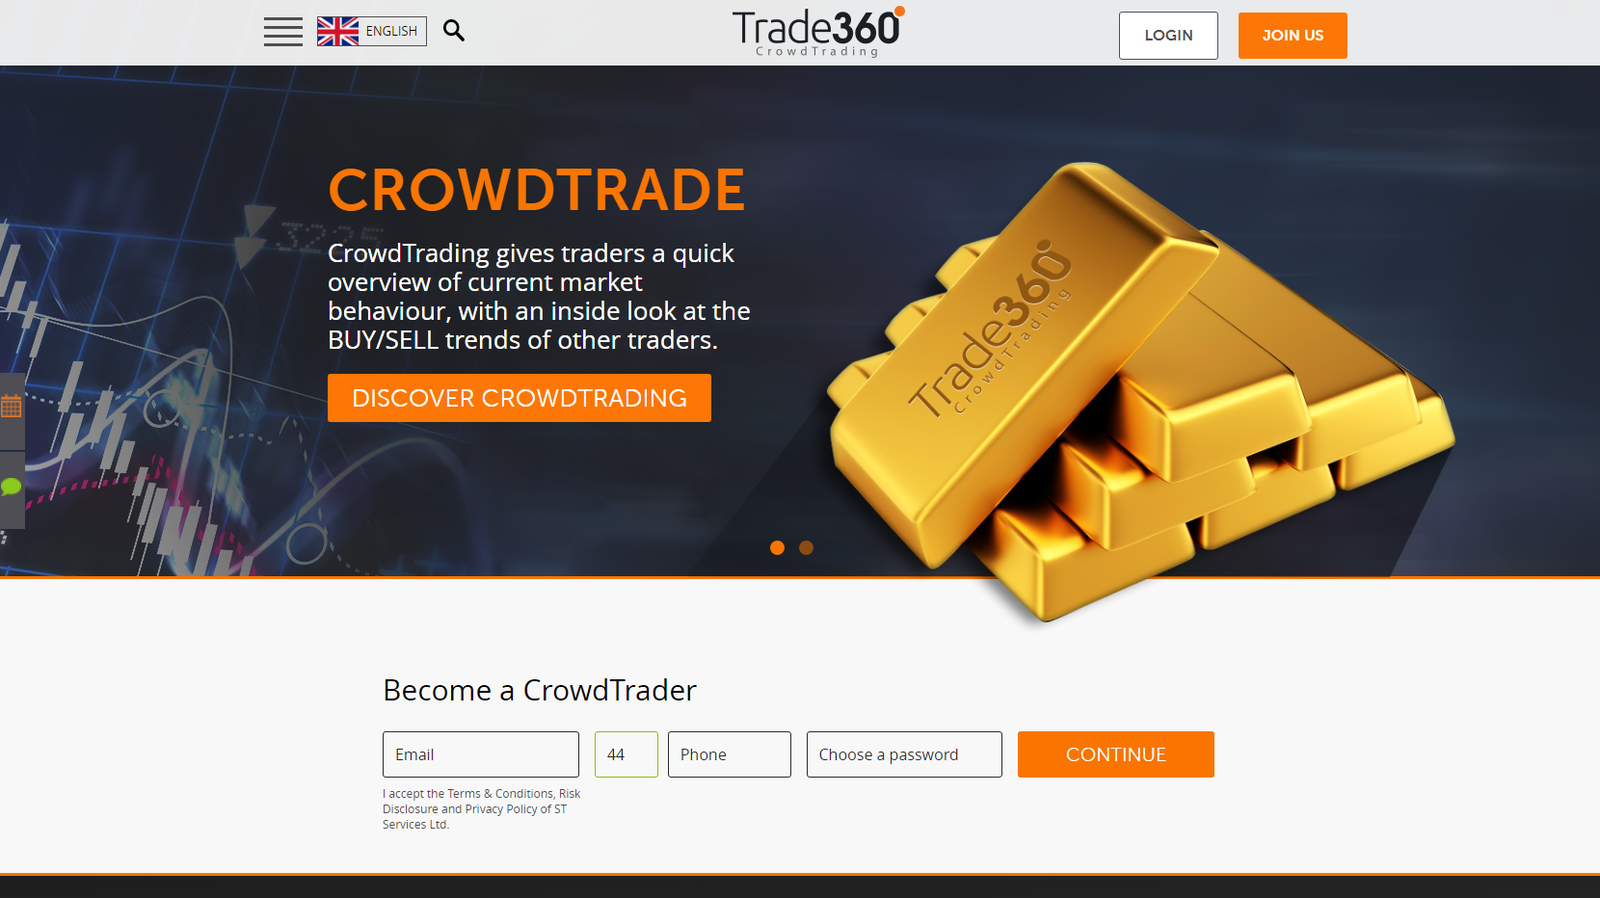 What is Trade360?